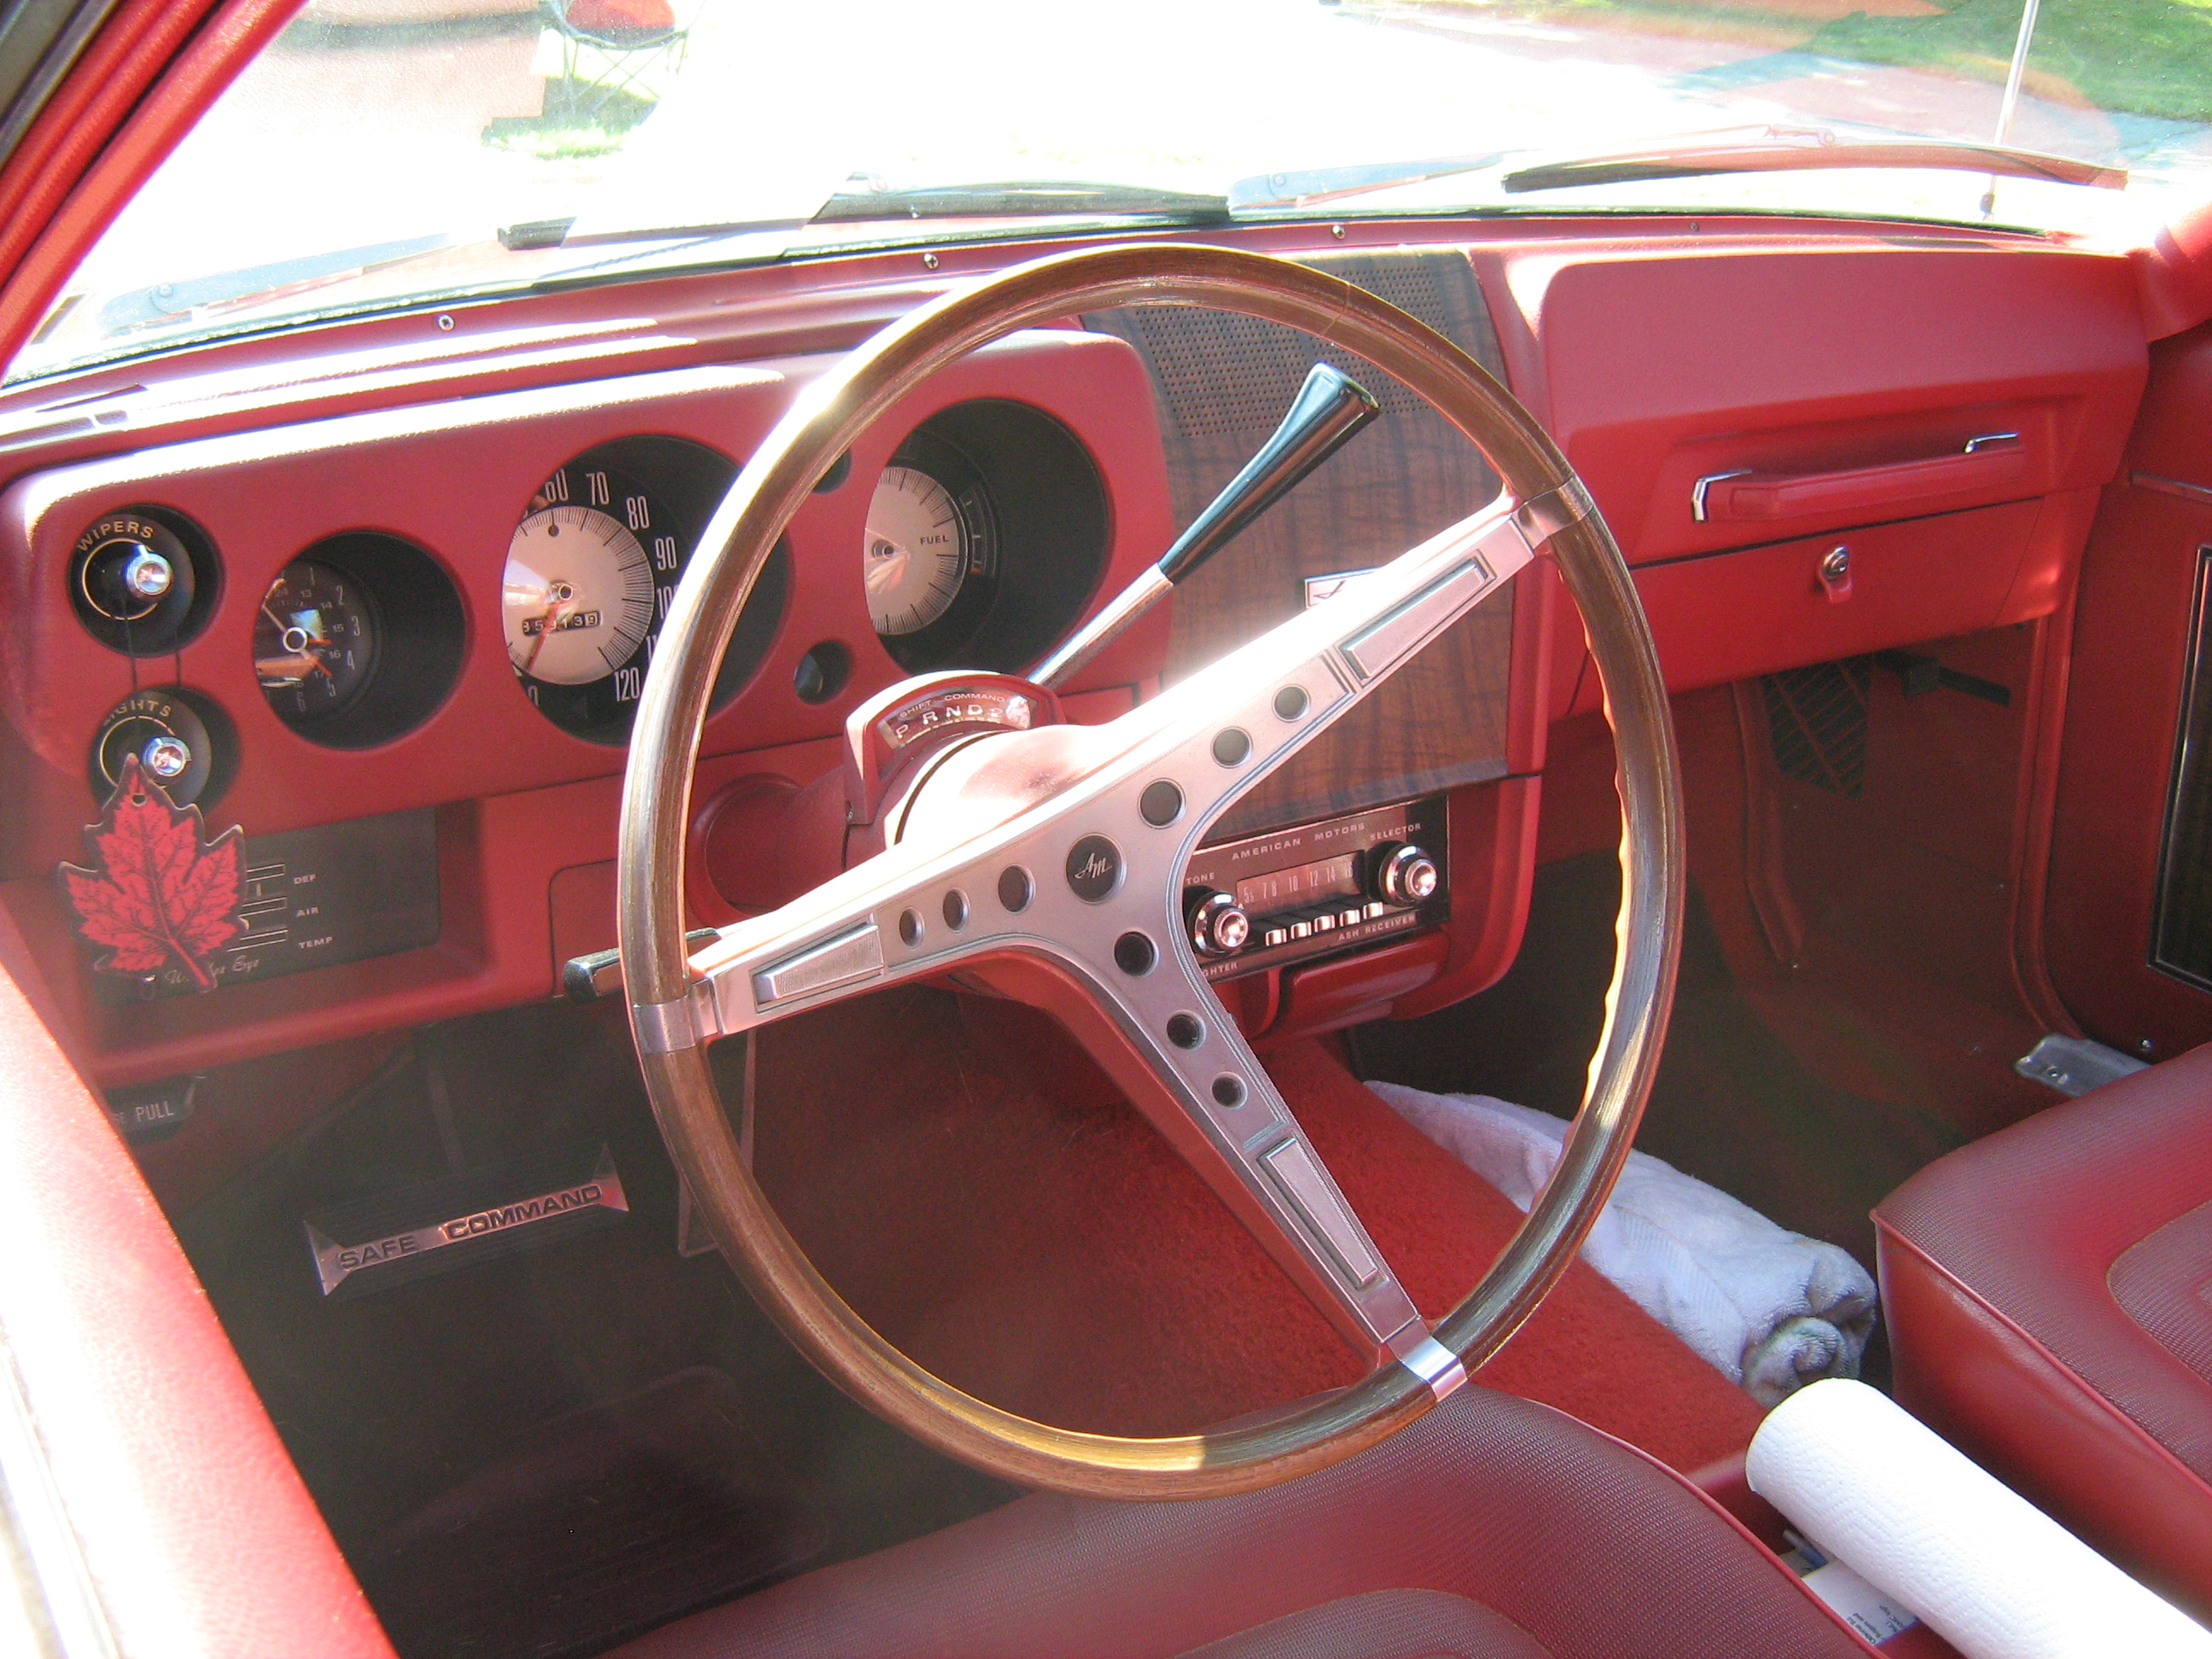 The Interior And Dashboard In This Car